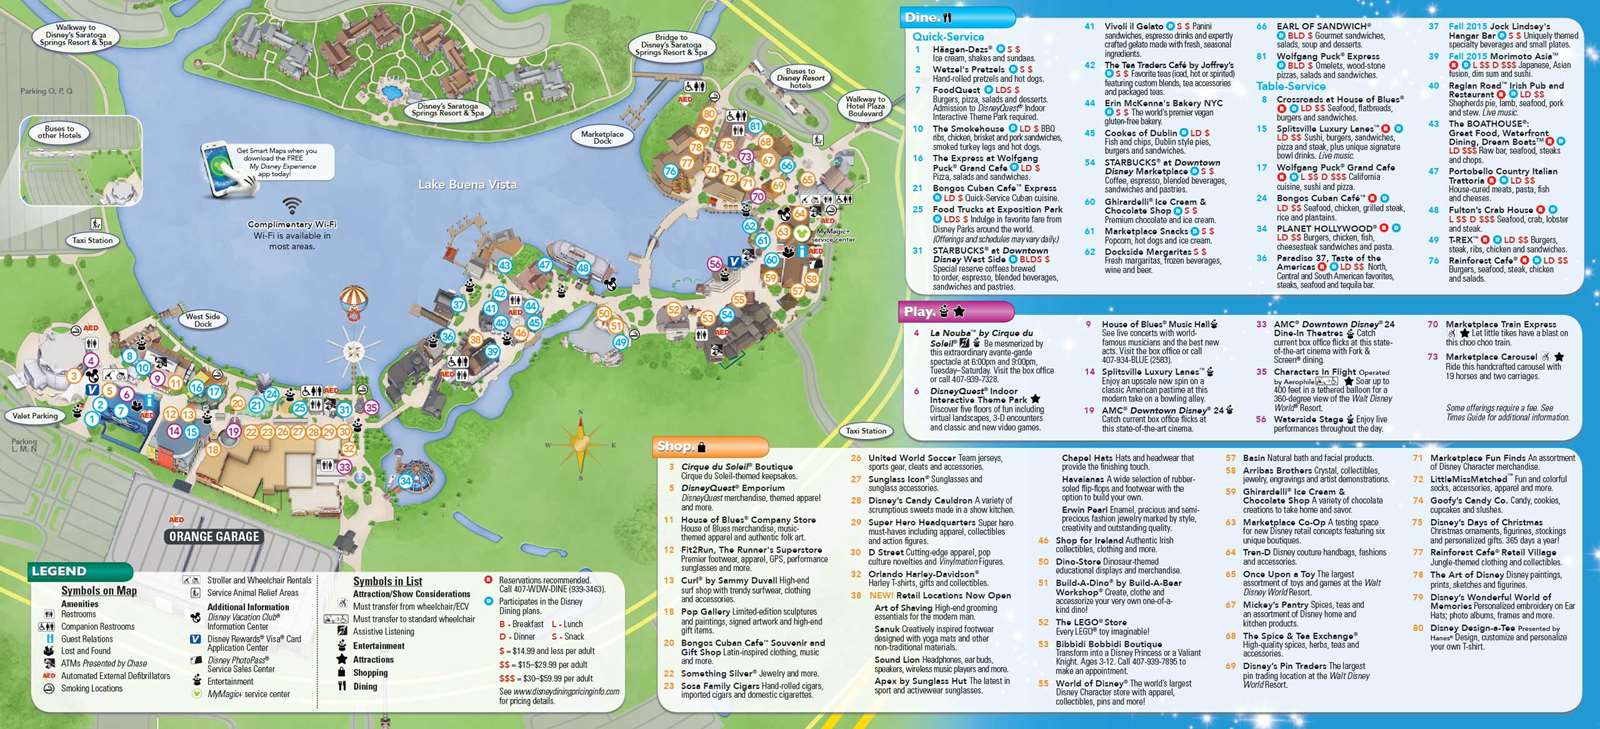 PHOTOS New Downtown Disney guide map includes Disney Springs